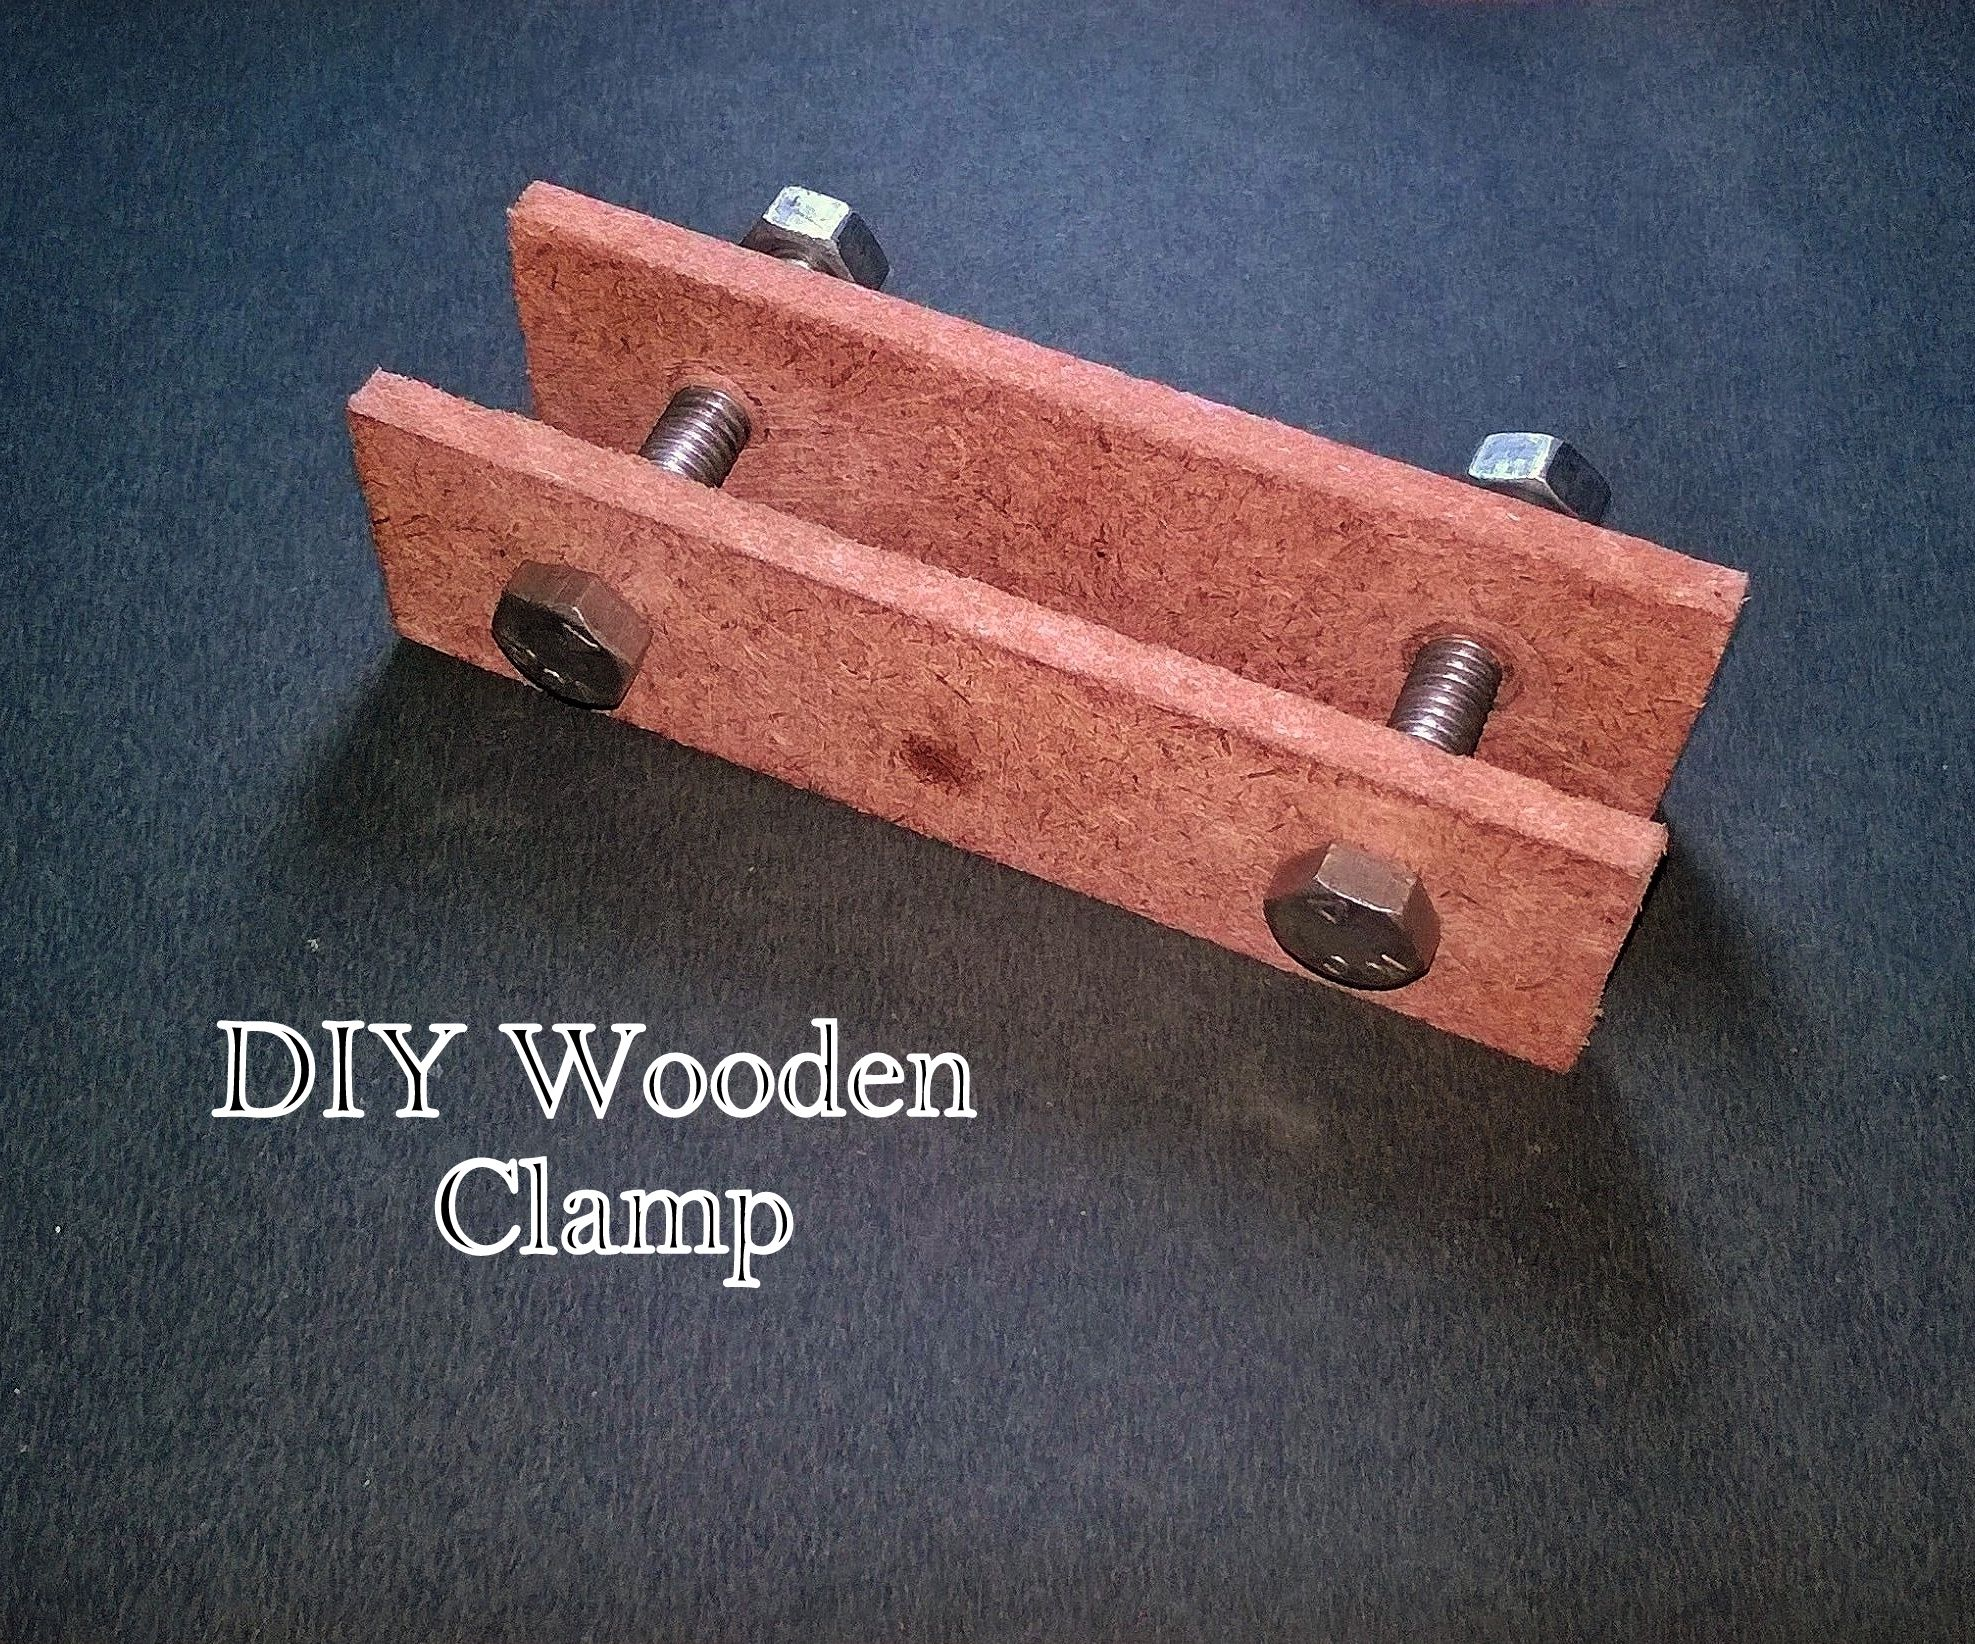 DIY Wooden Clamp